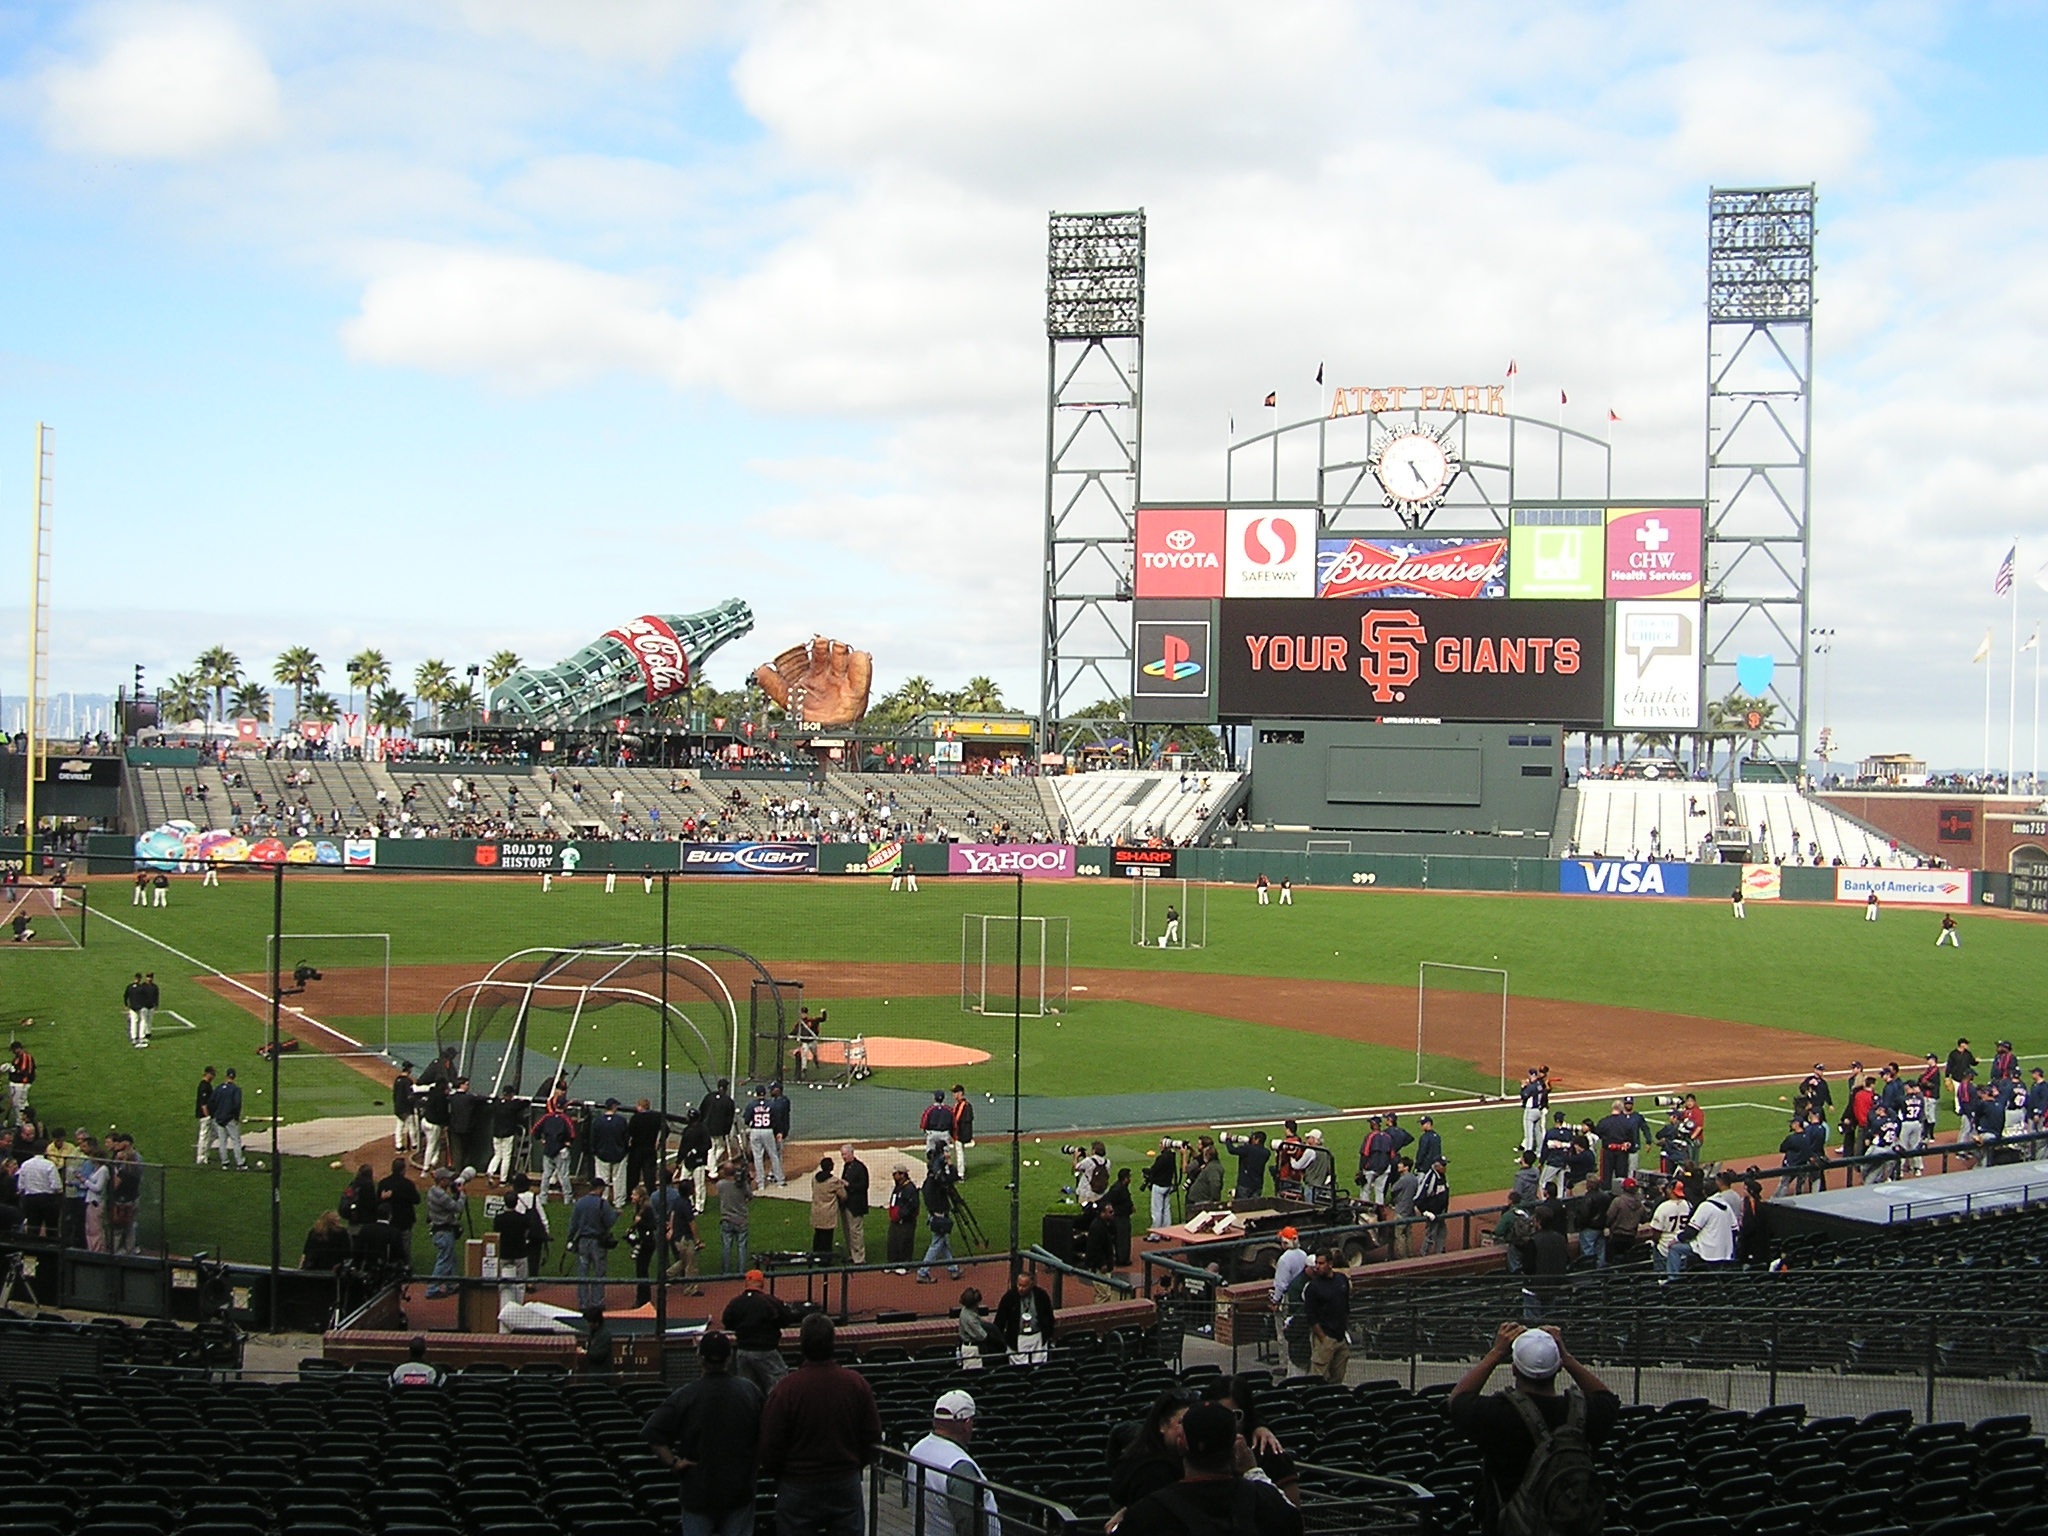 Batting Practive - AT&T Park, San Francisco